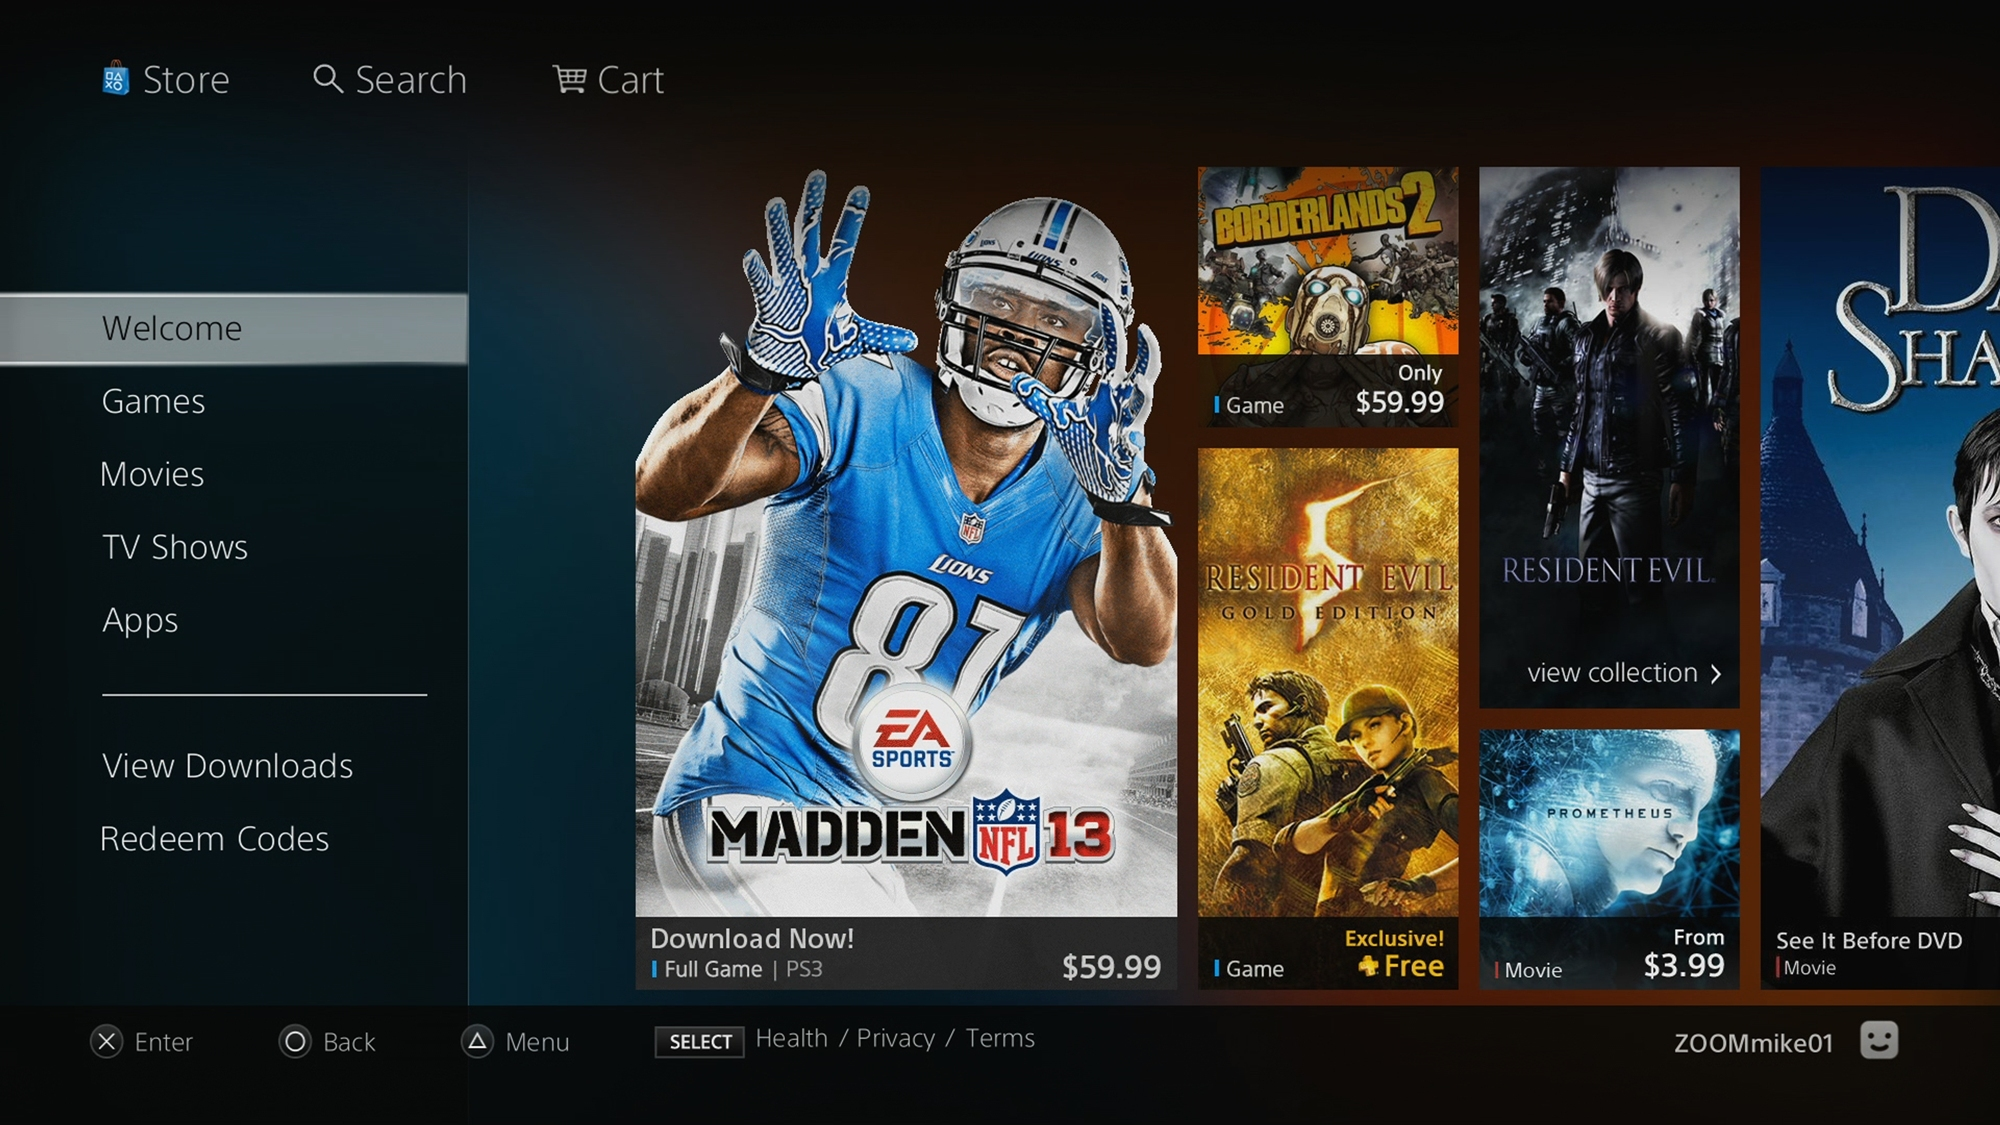 psn store layout